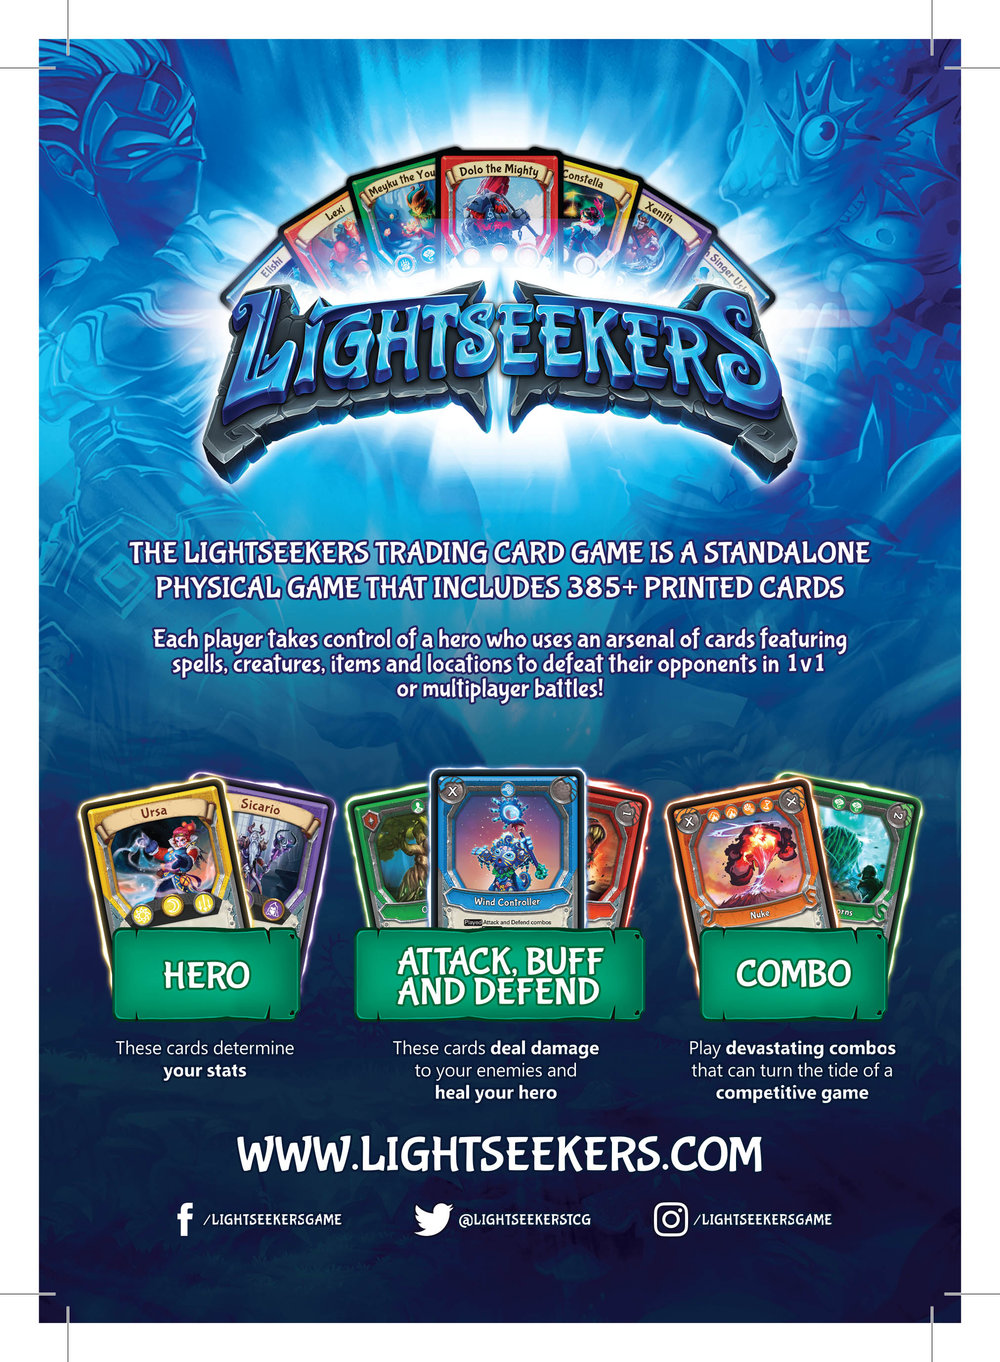 Lightseekers Info Sheet.jpg